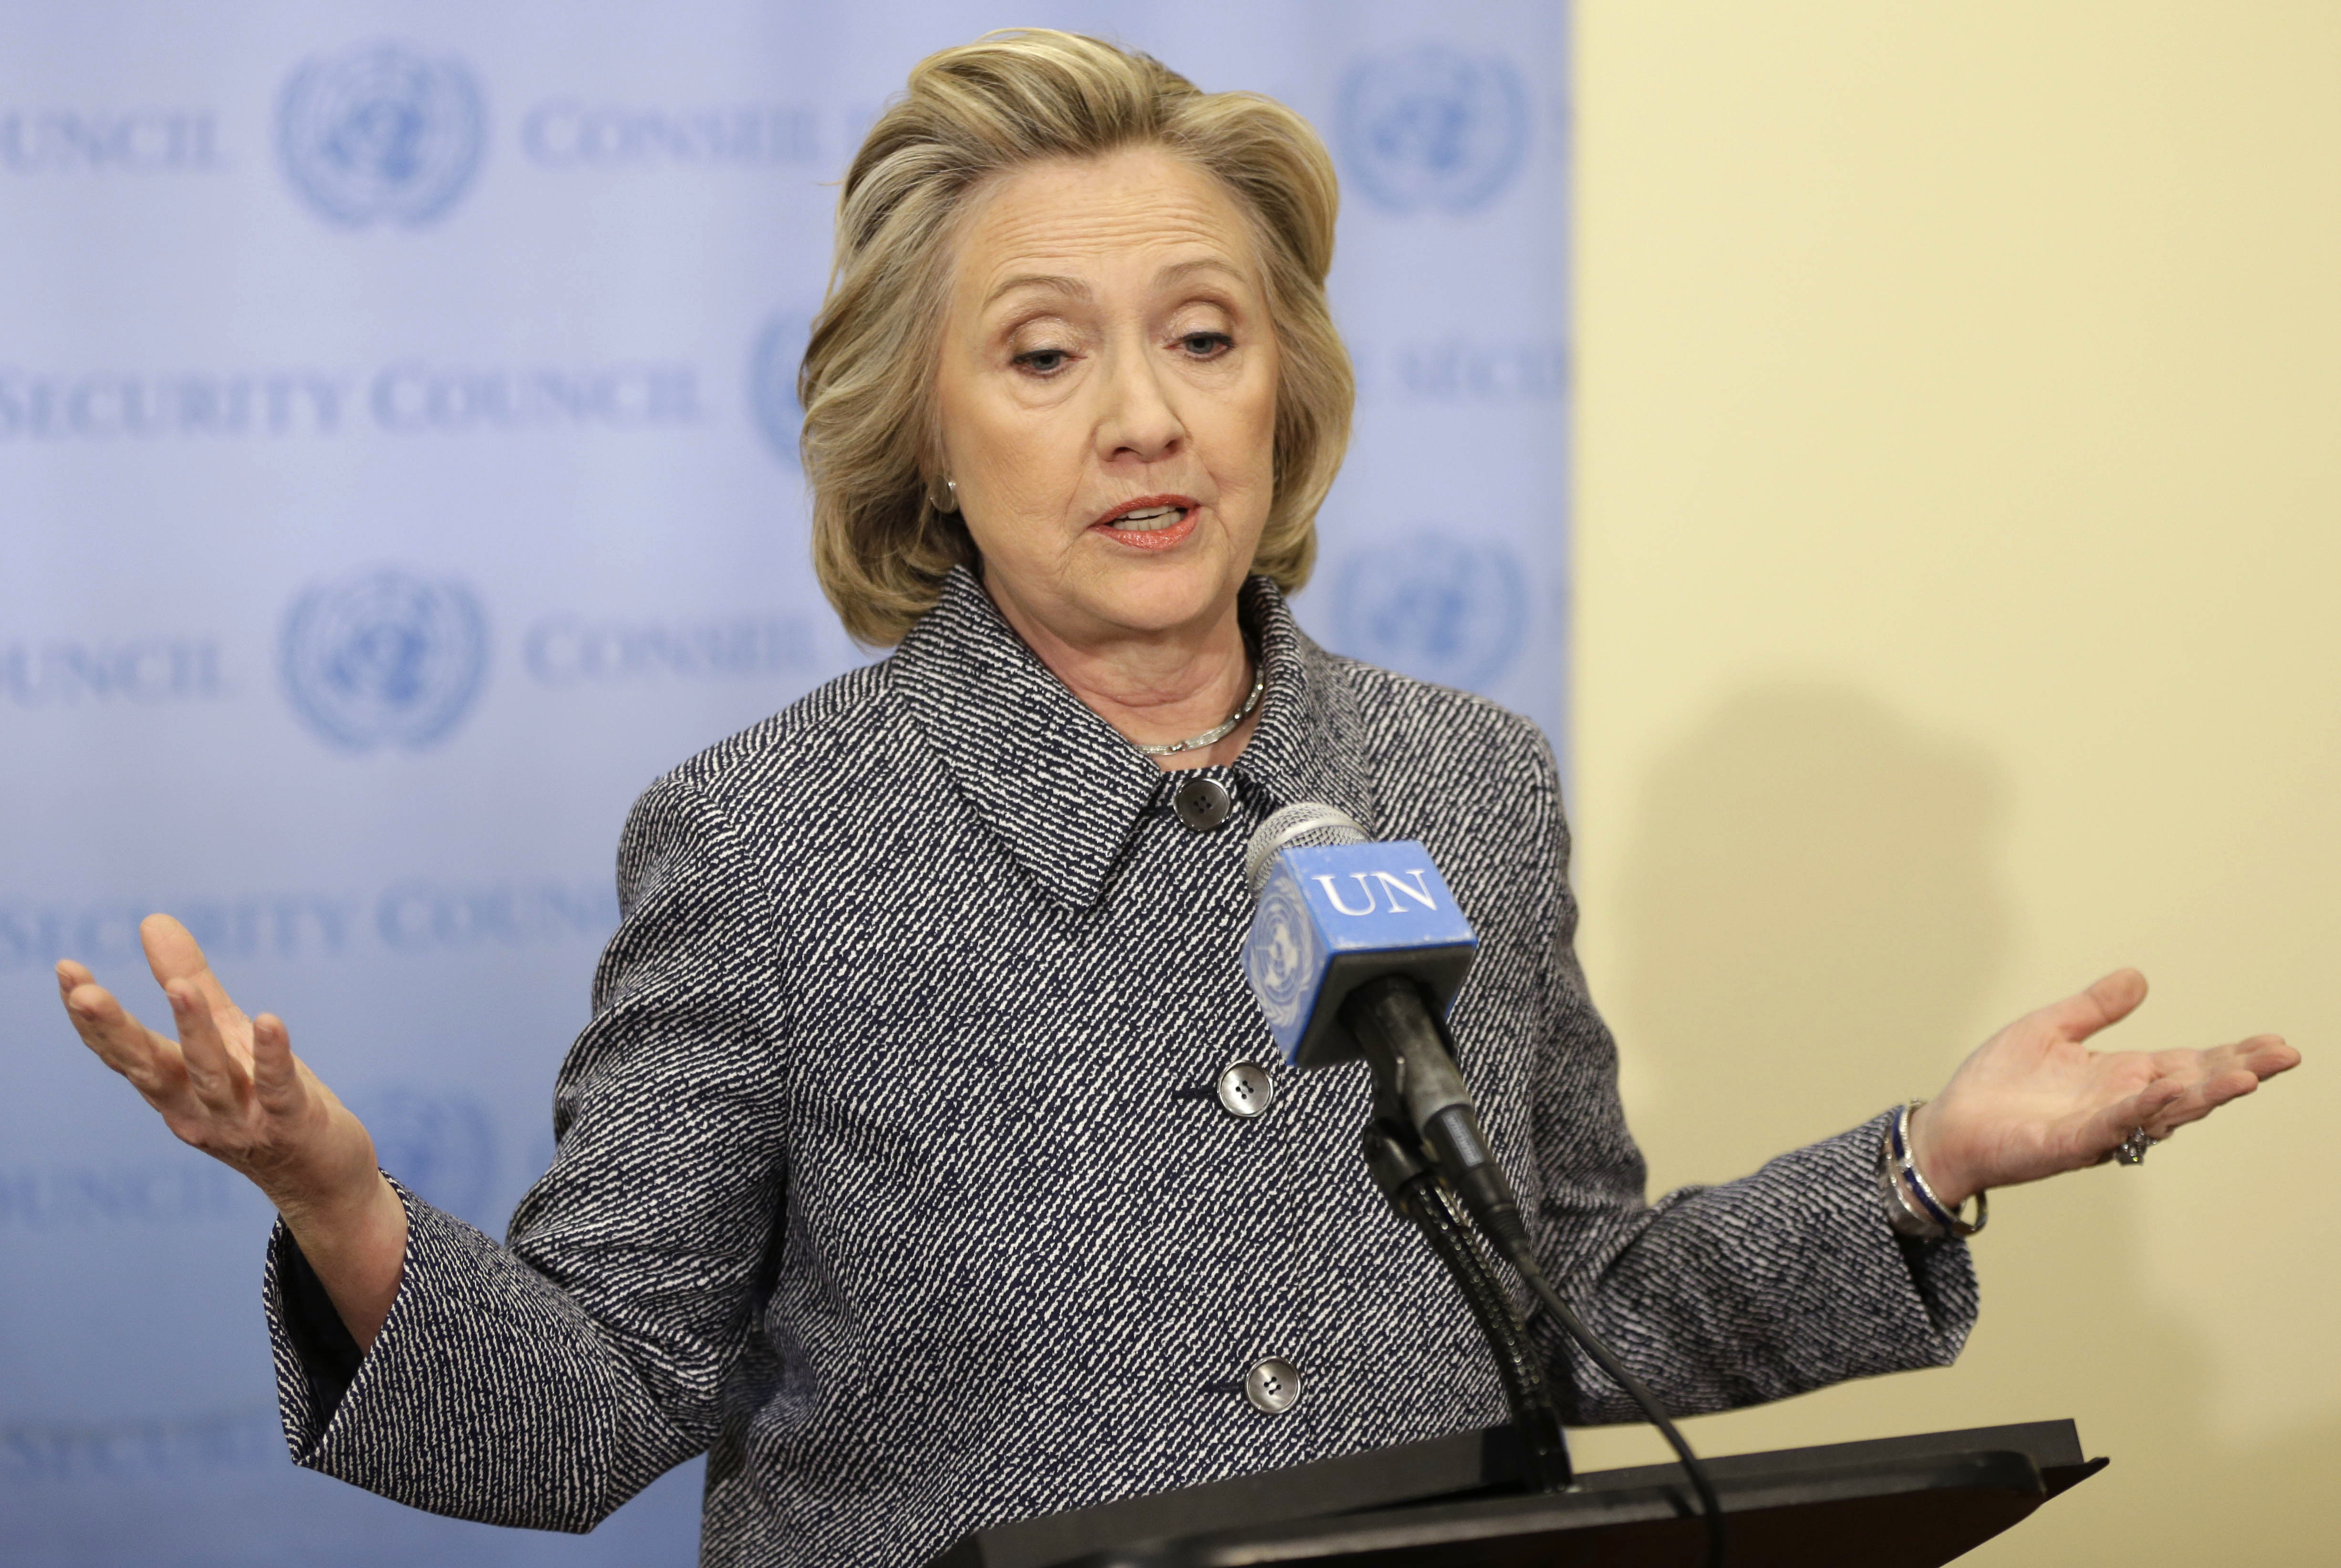 Hillary Rodham Clinton addresses the email controversy at a news conference In New York City March 10, 2015.